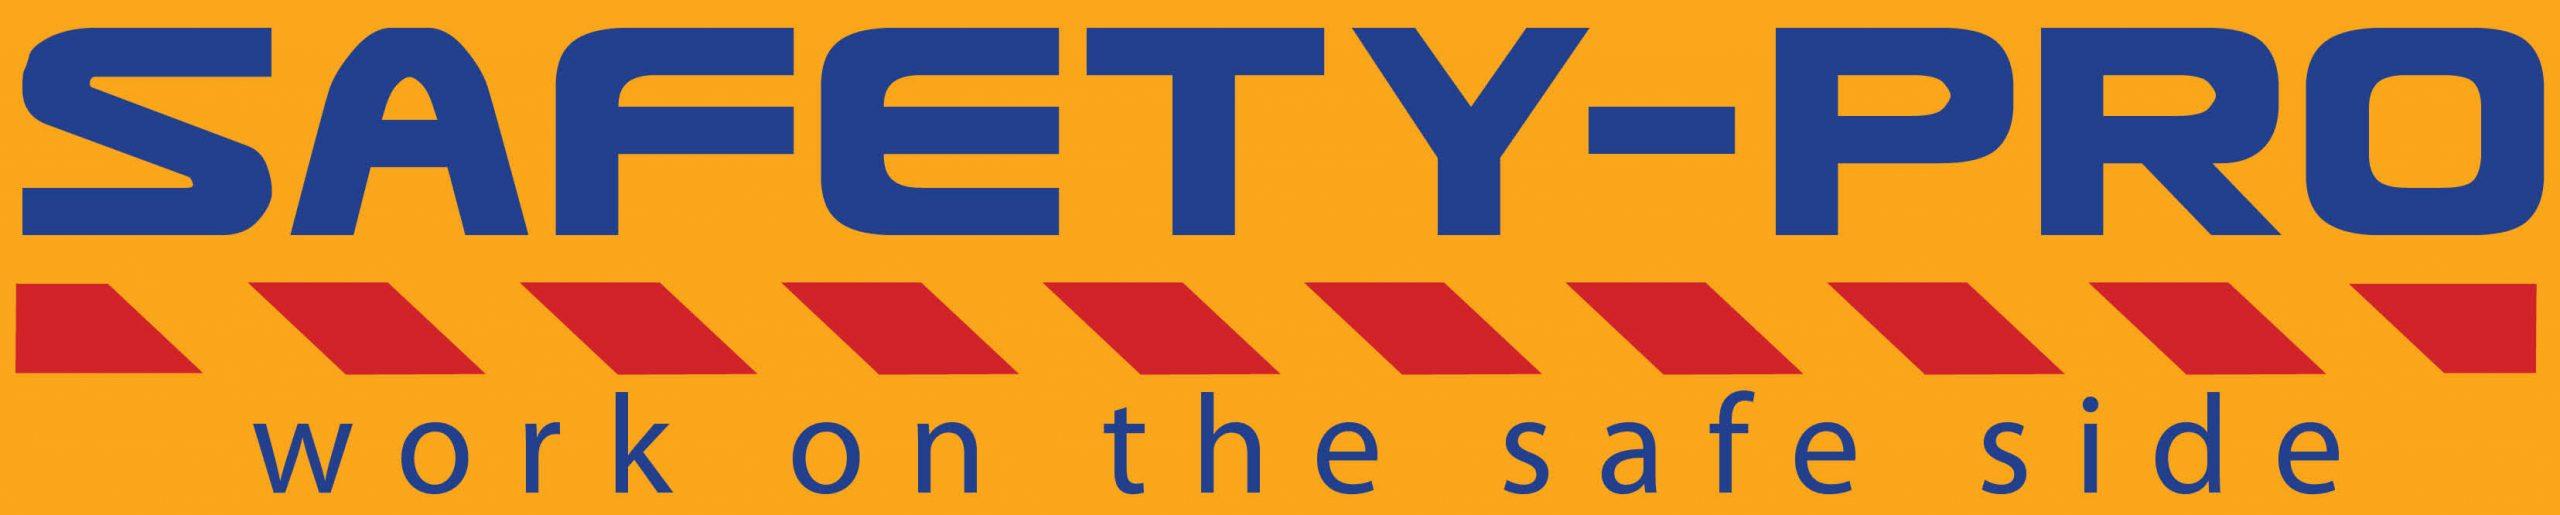 Safety-pro.co.il